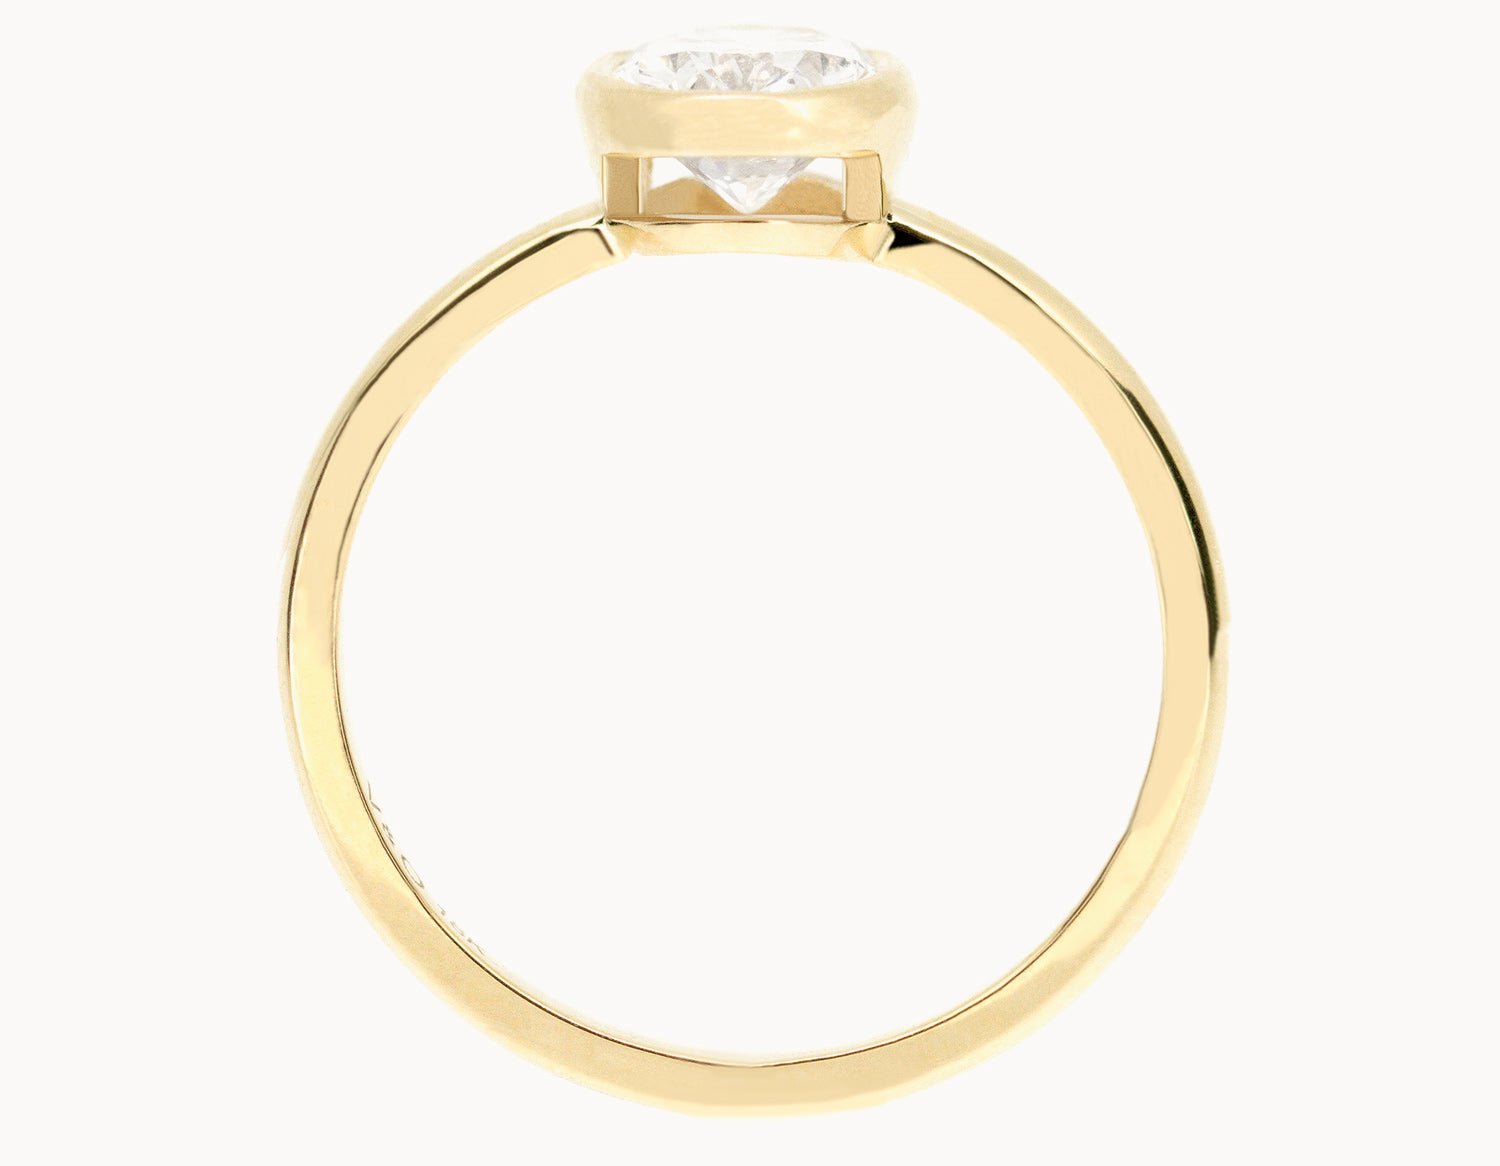 The Oval Bezel - 18k Yellow Gold